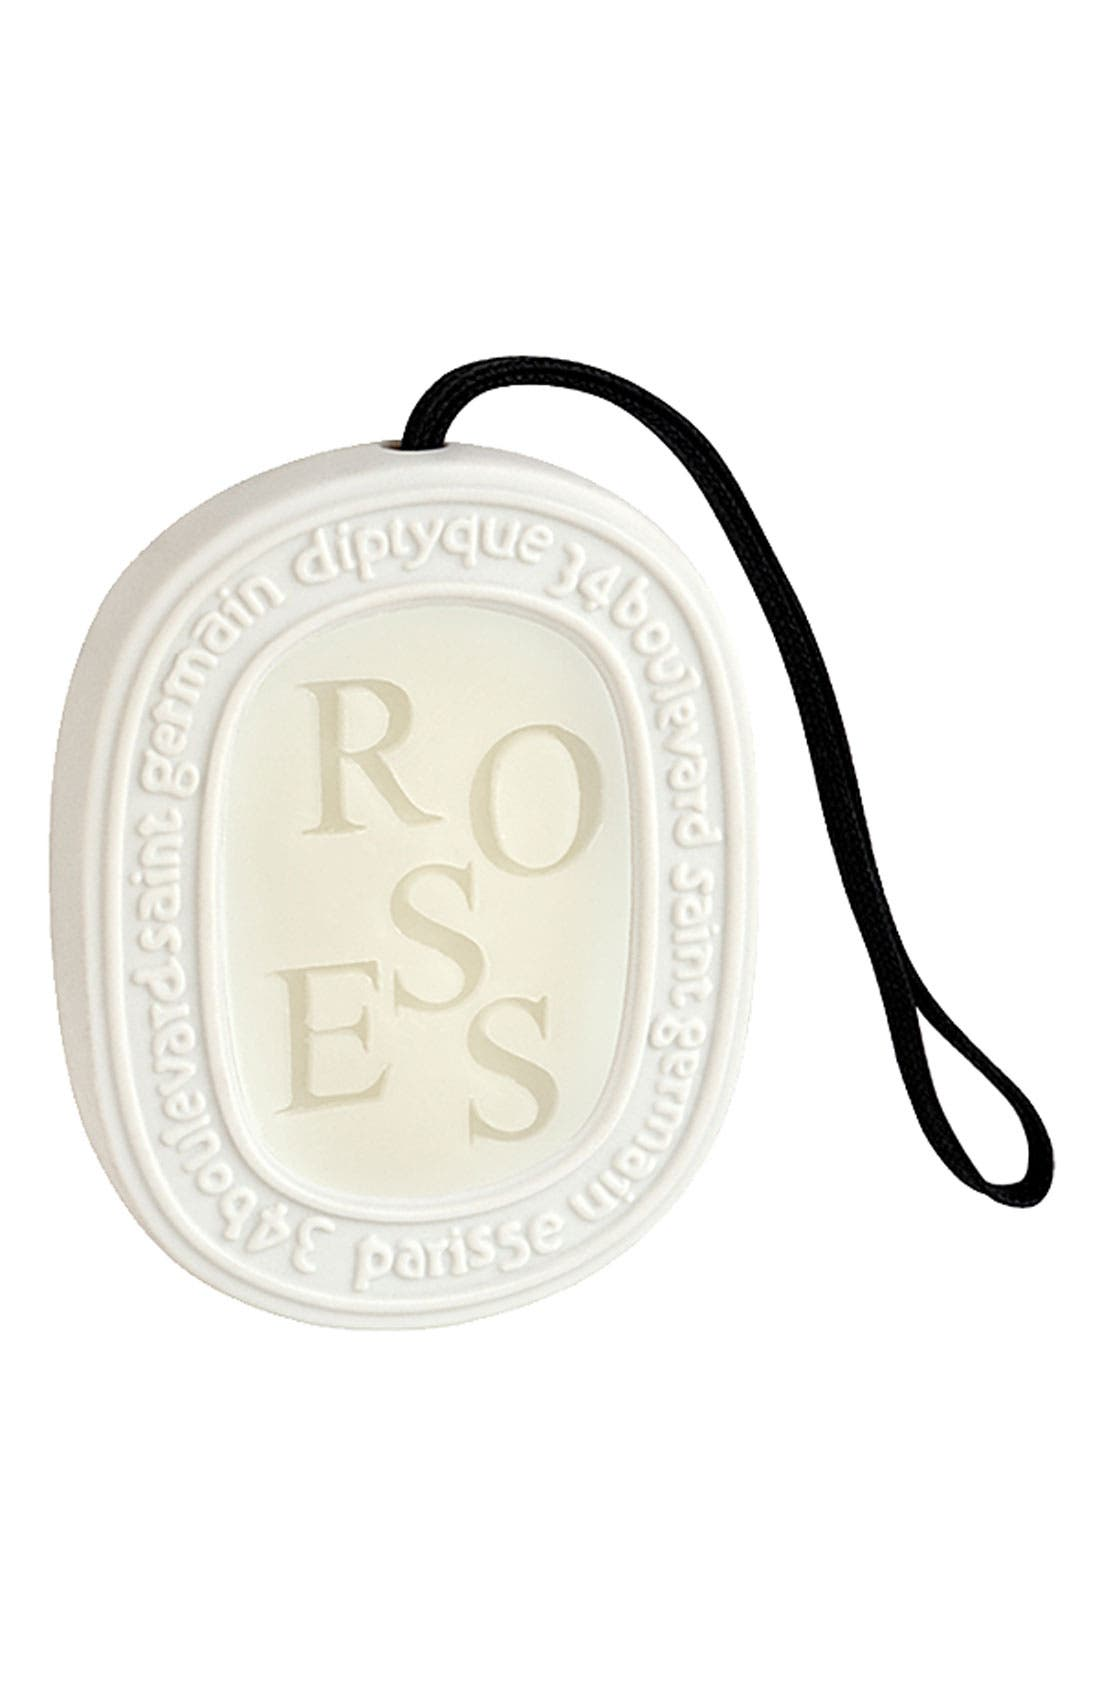 'Roses' Scented Oval,                             Main thumbnail 1, color,                             NO COLOR